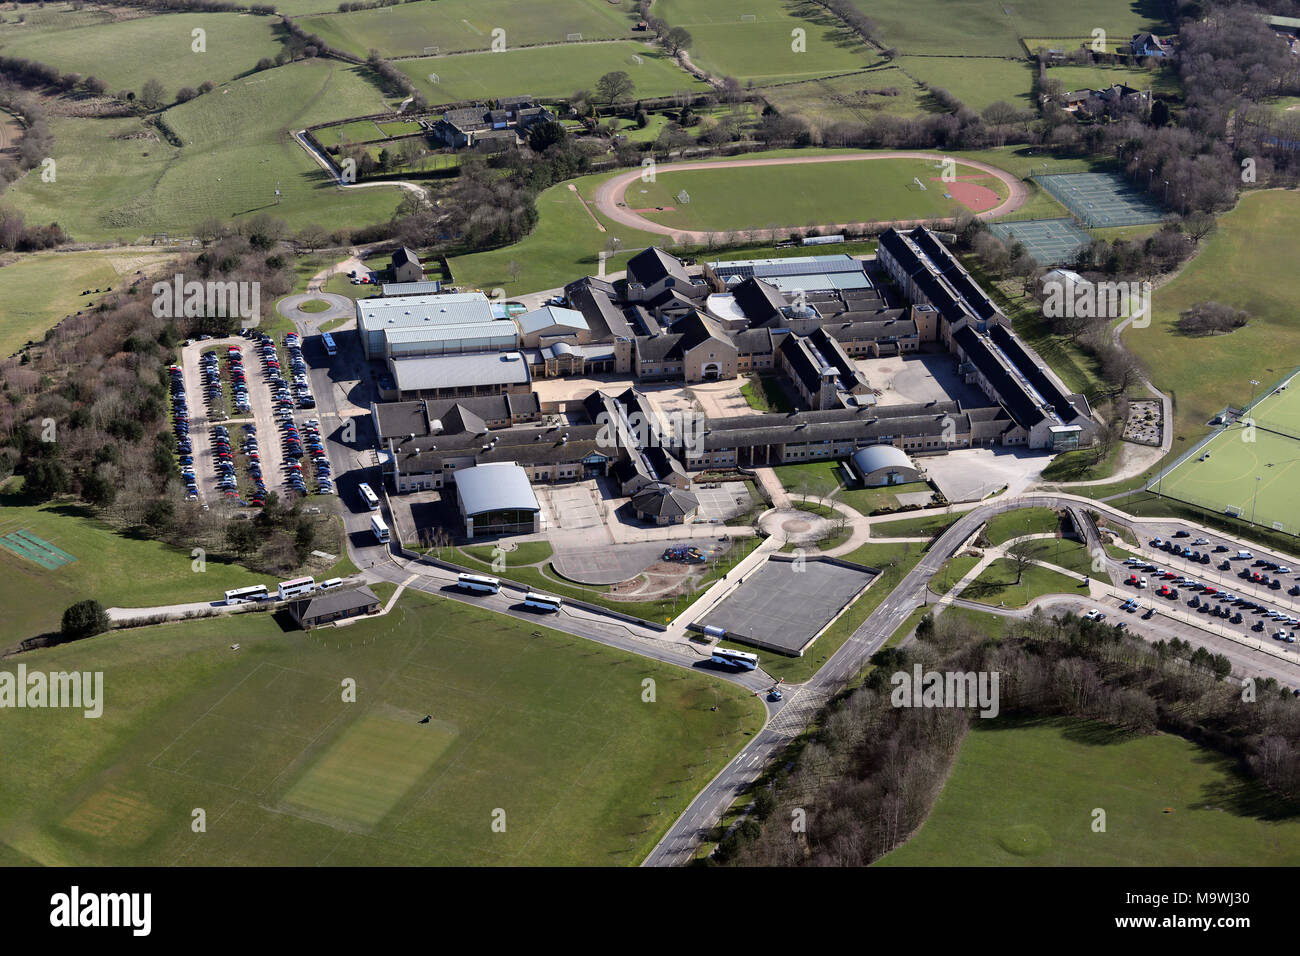 aerial view of the Grammar School at Leeds, West Yorkshire, UK - Stock Image